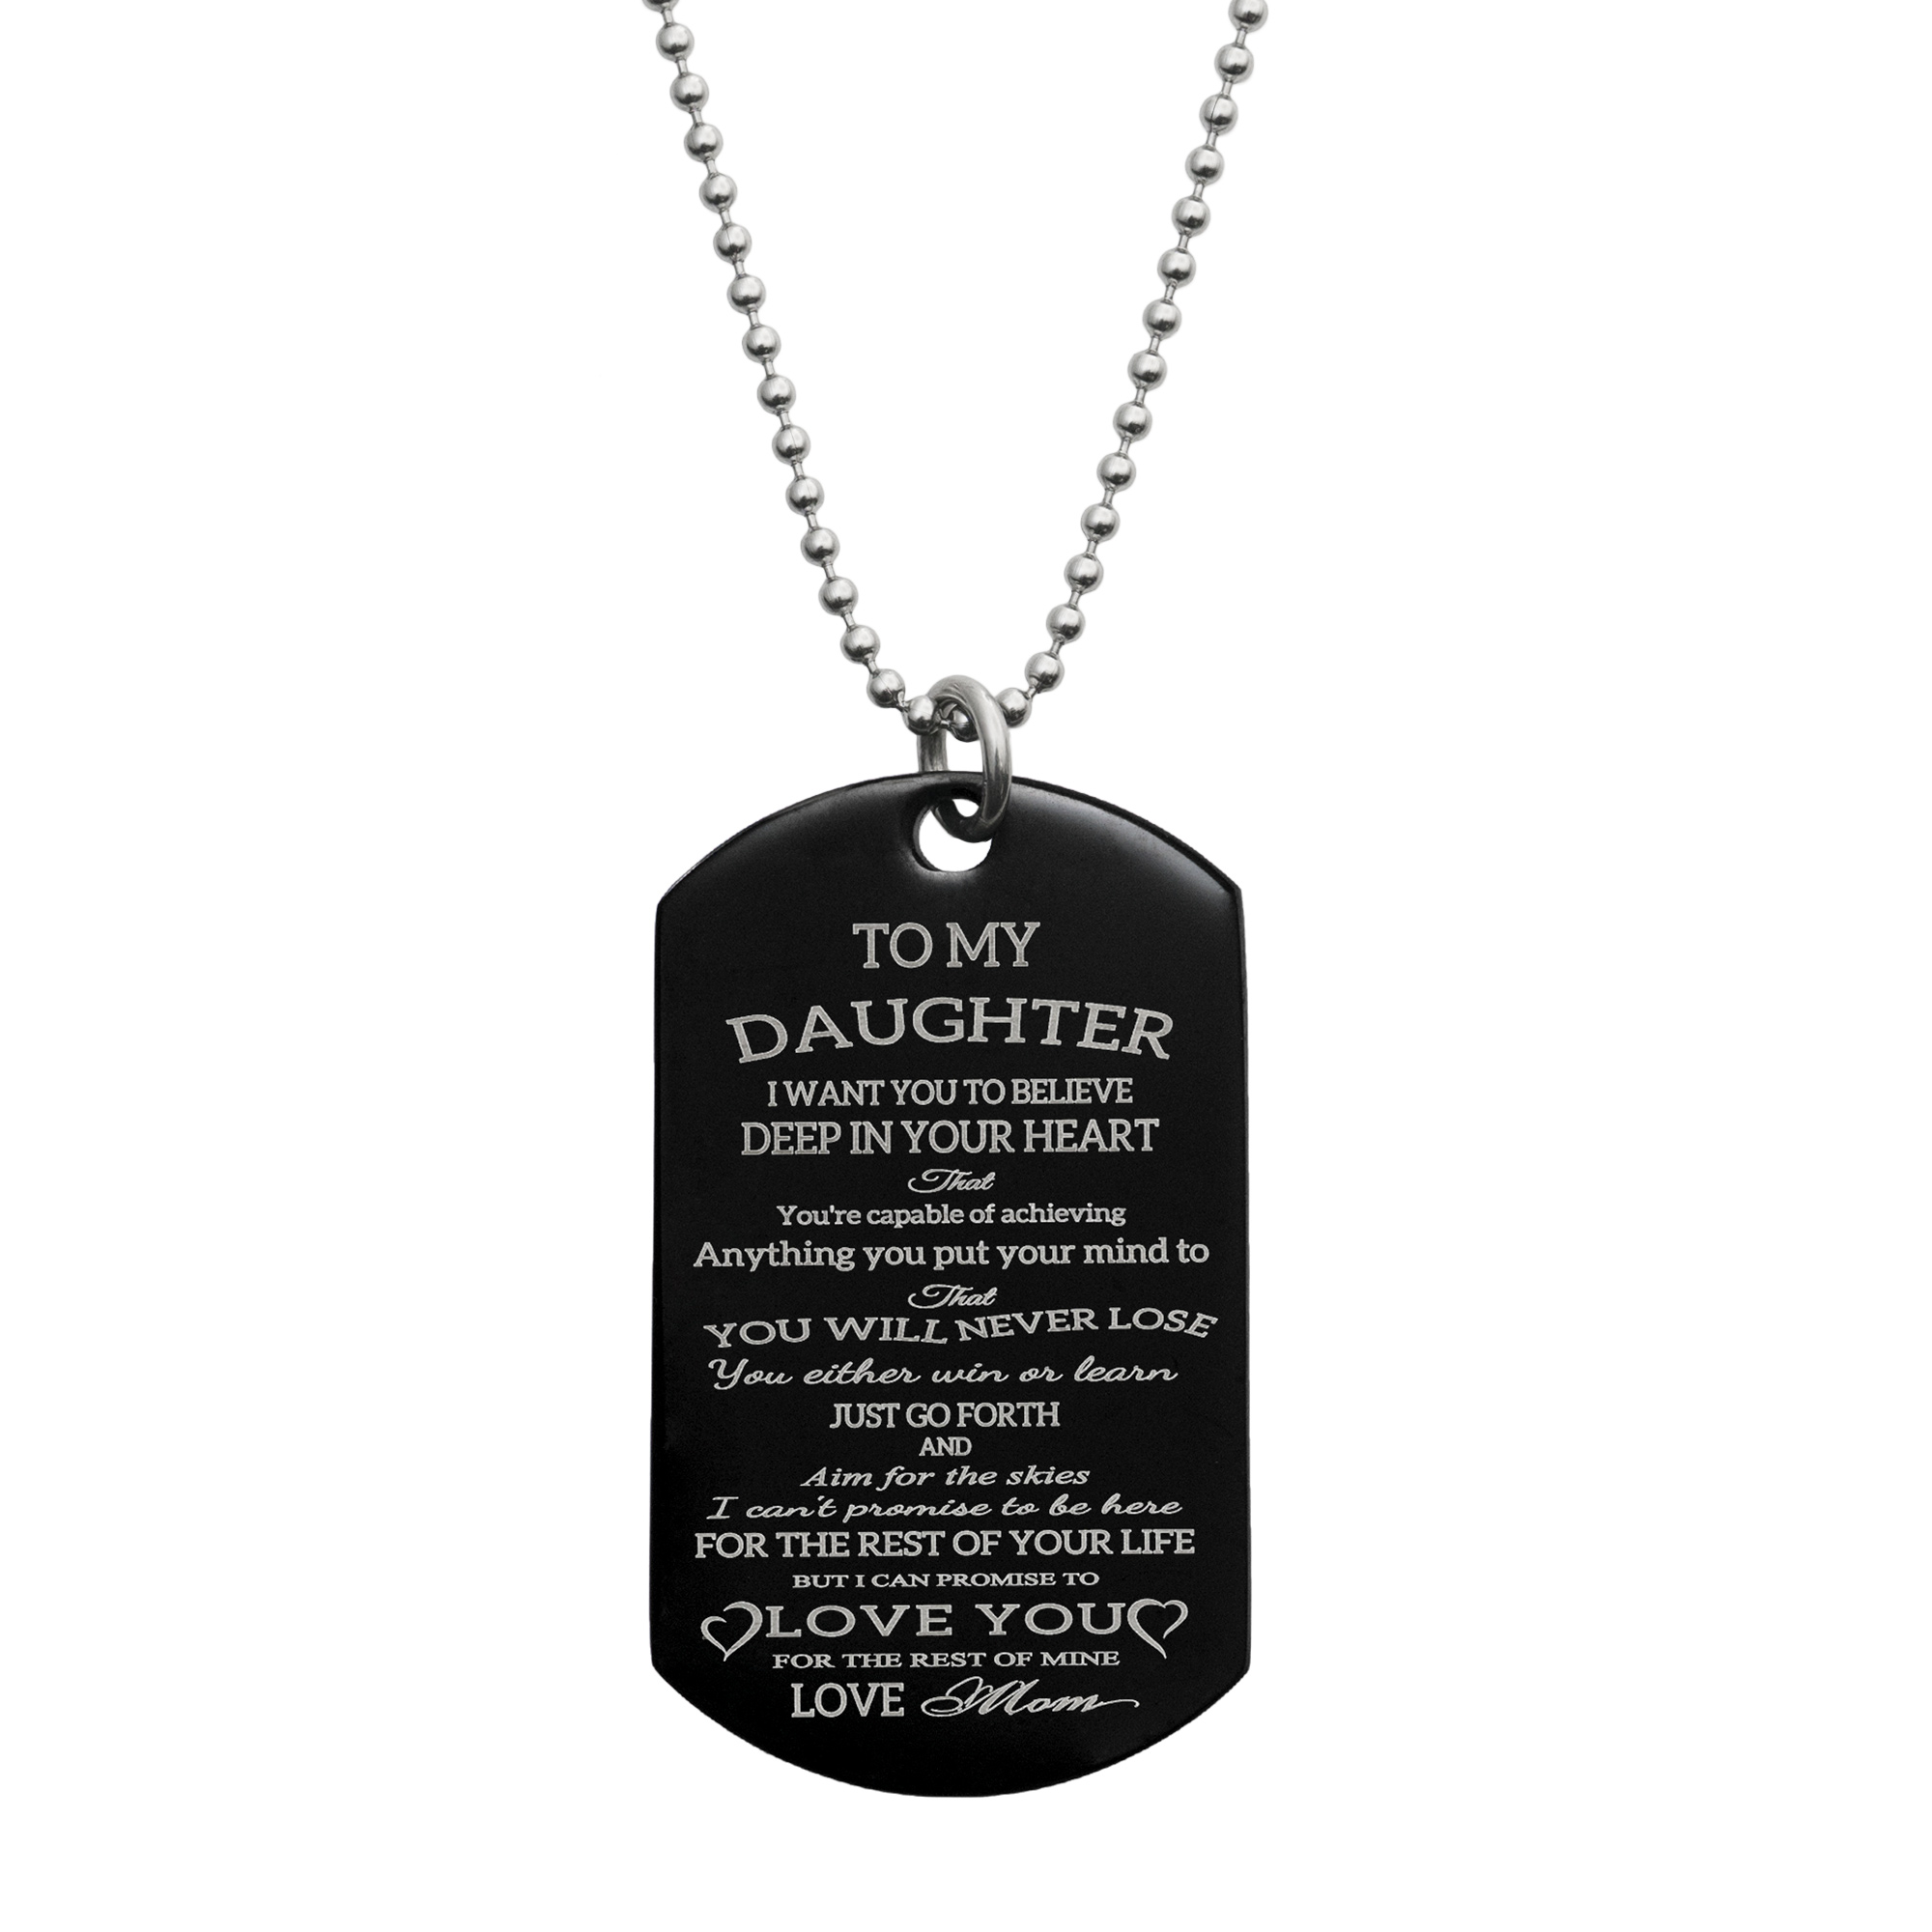 To My Daughter Fr Mom Personalized Text Engraved Stainless Steel Dog Tag Military Pendant, 24\'\' Necklace Love Note